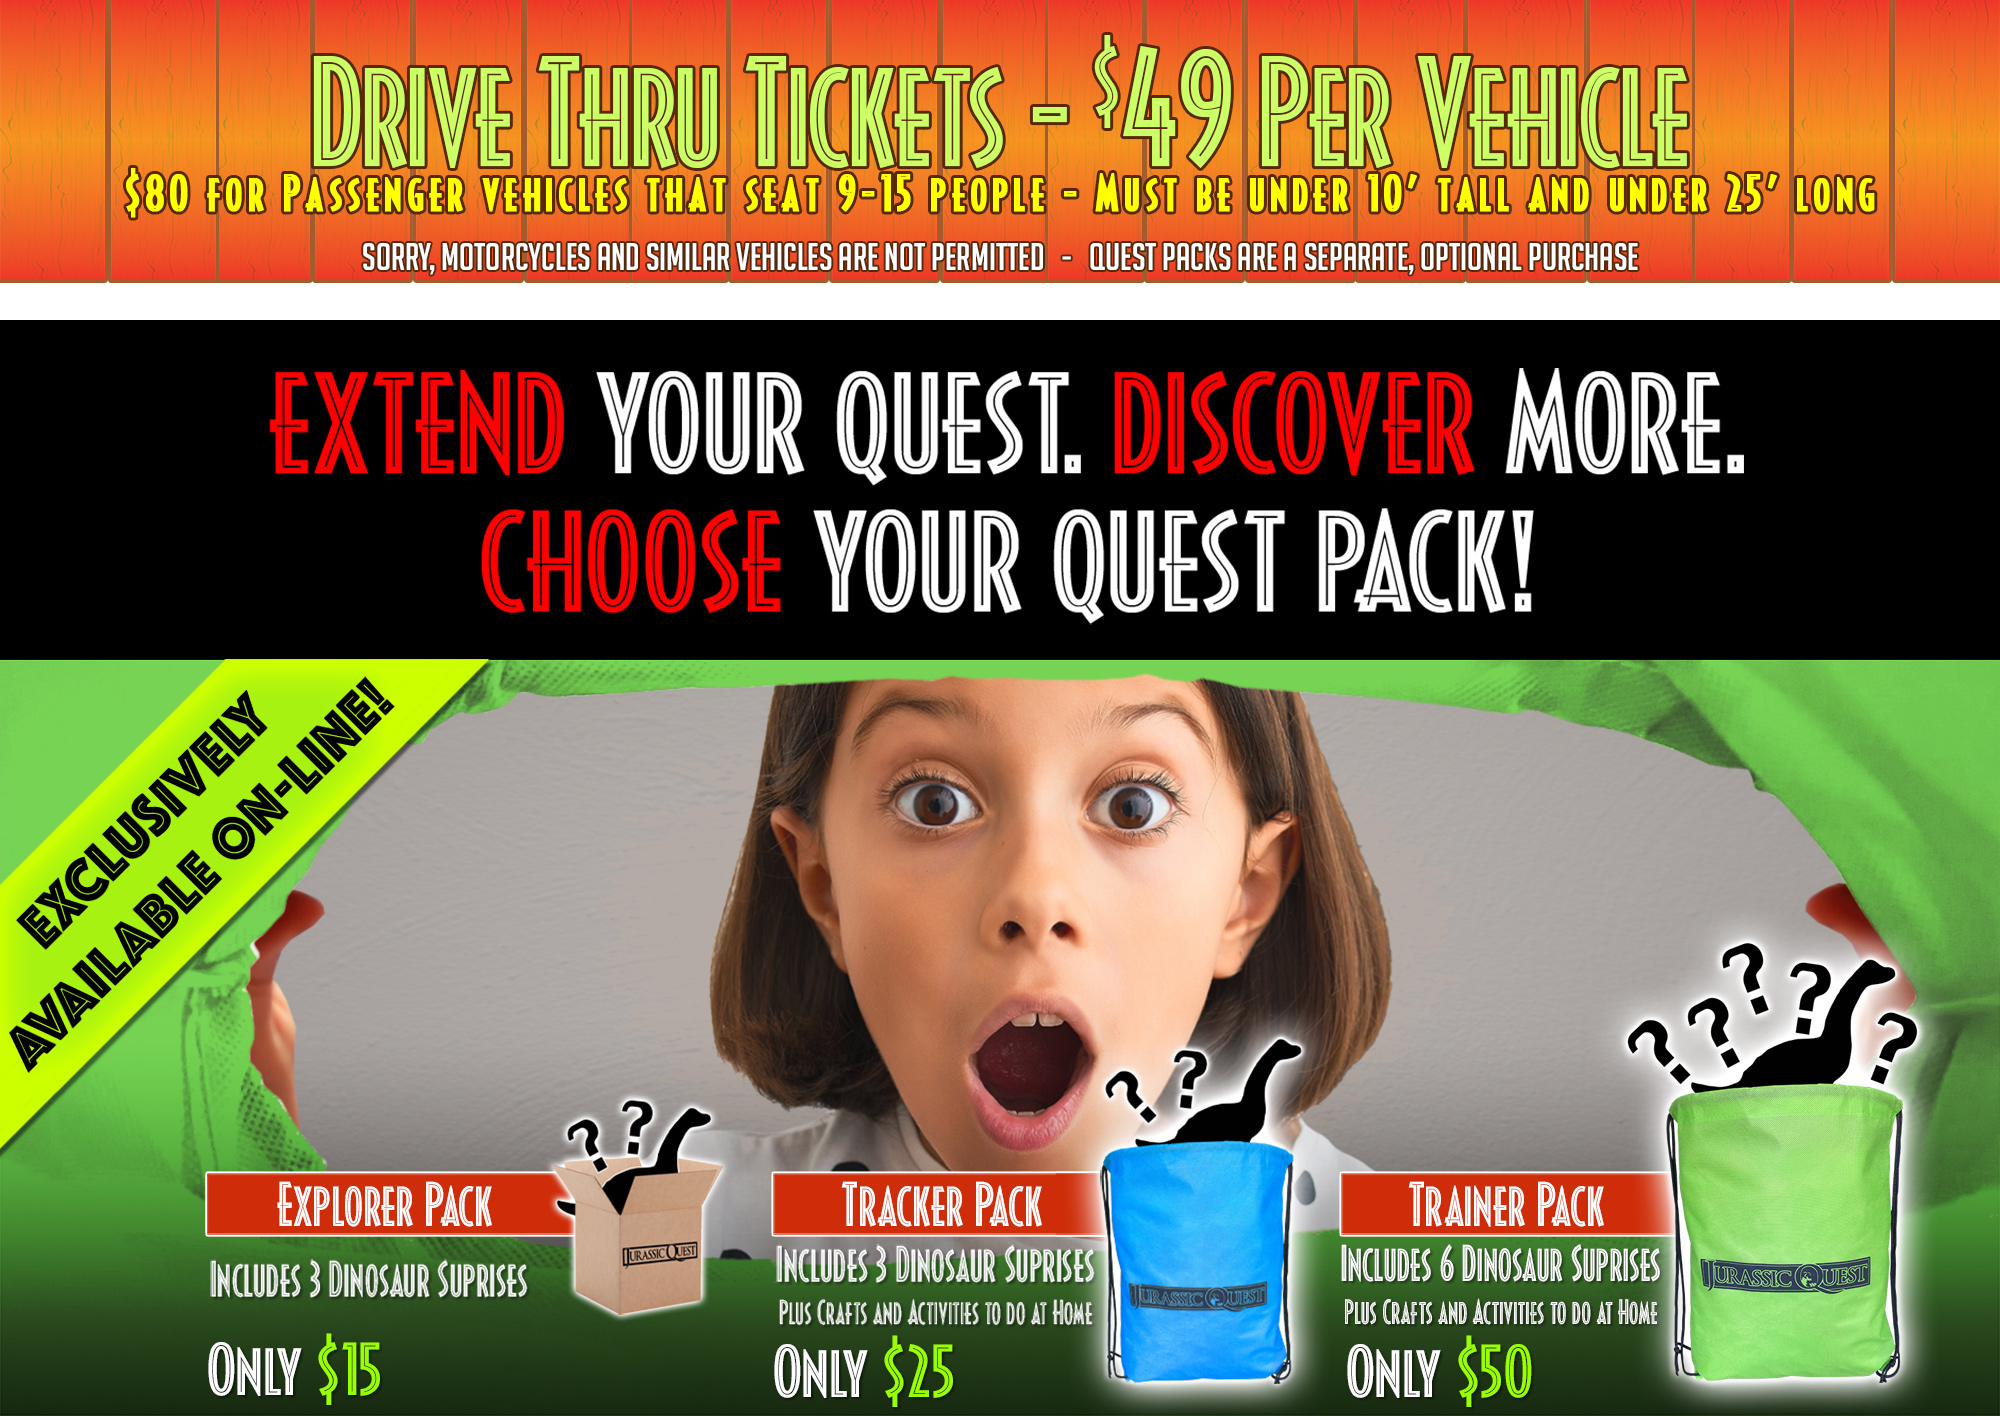 Extended your quest with Quest Packs.